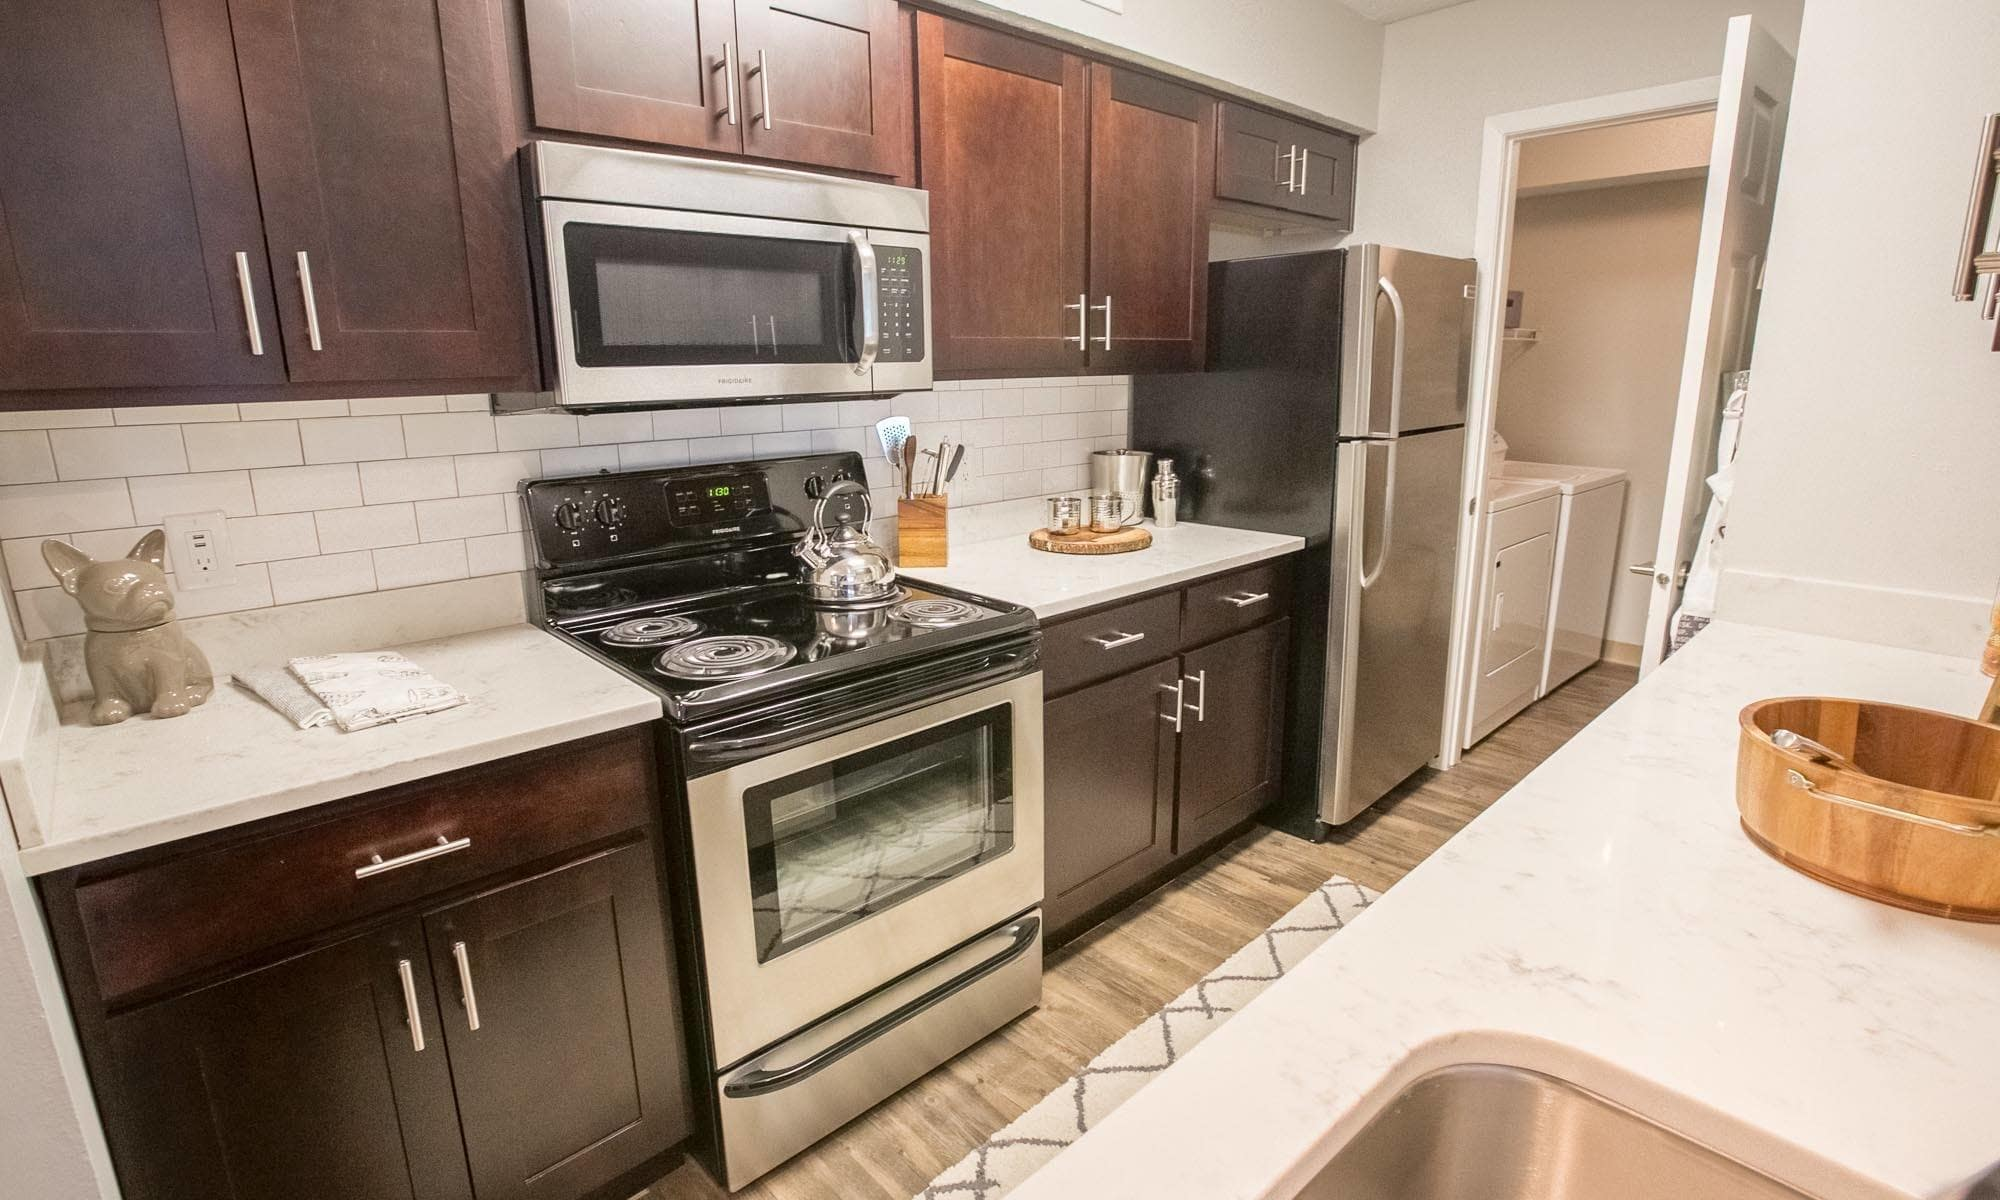 westlake, oh apartments for rent near crocker road | hunter's